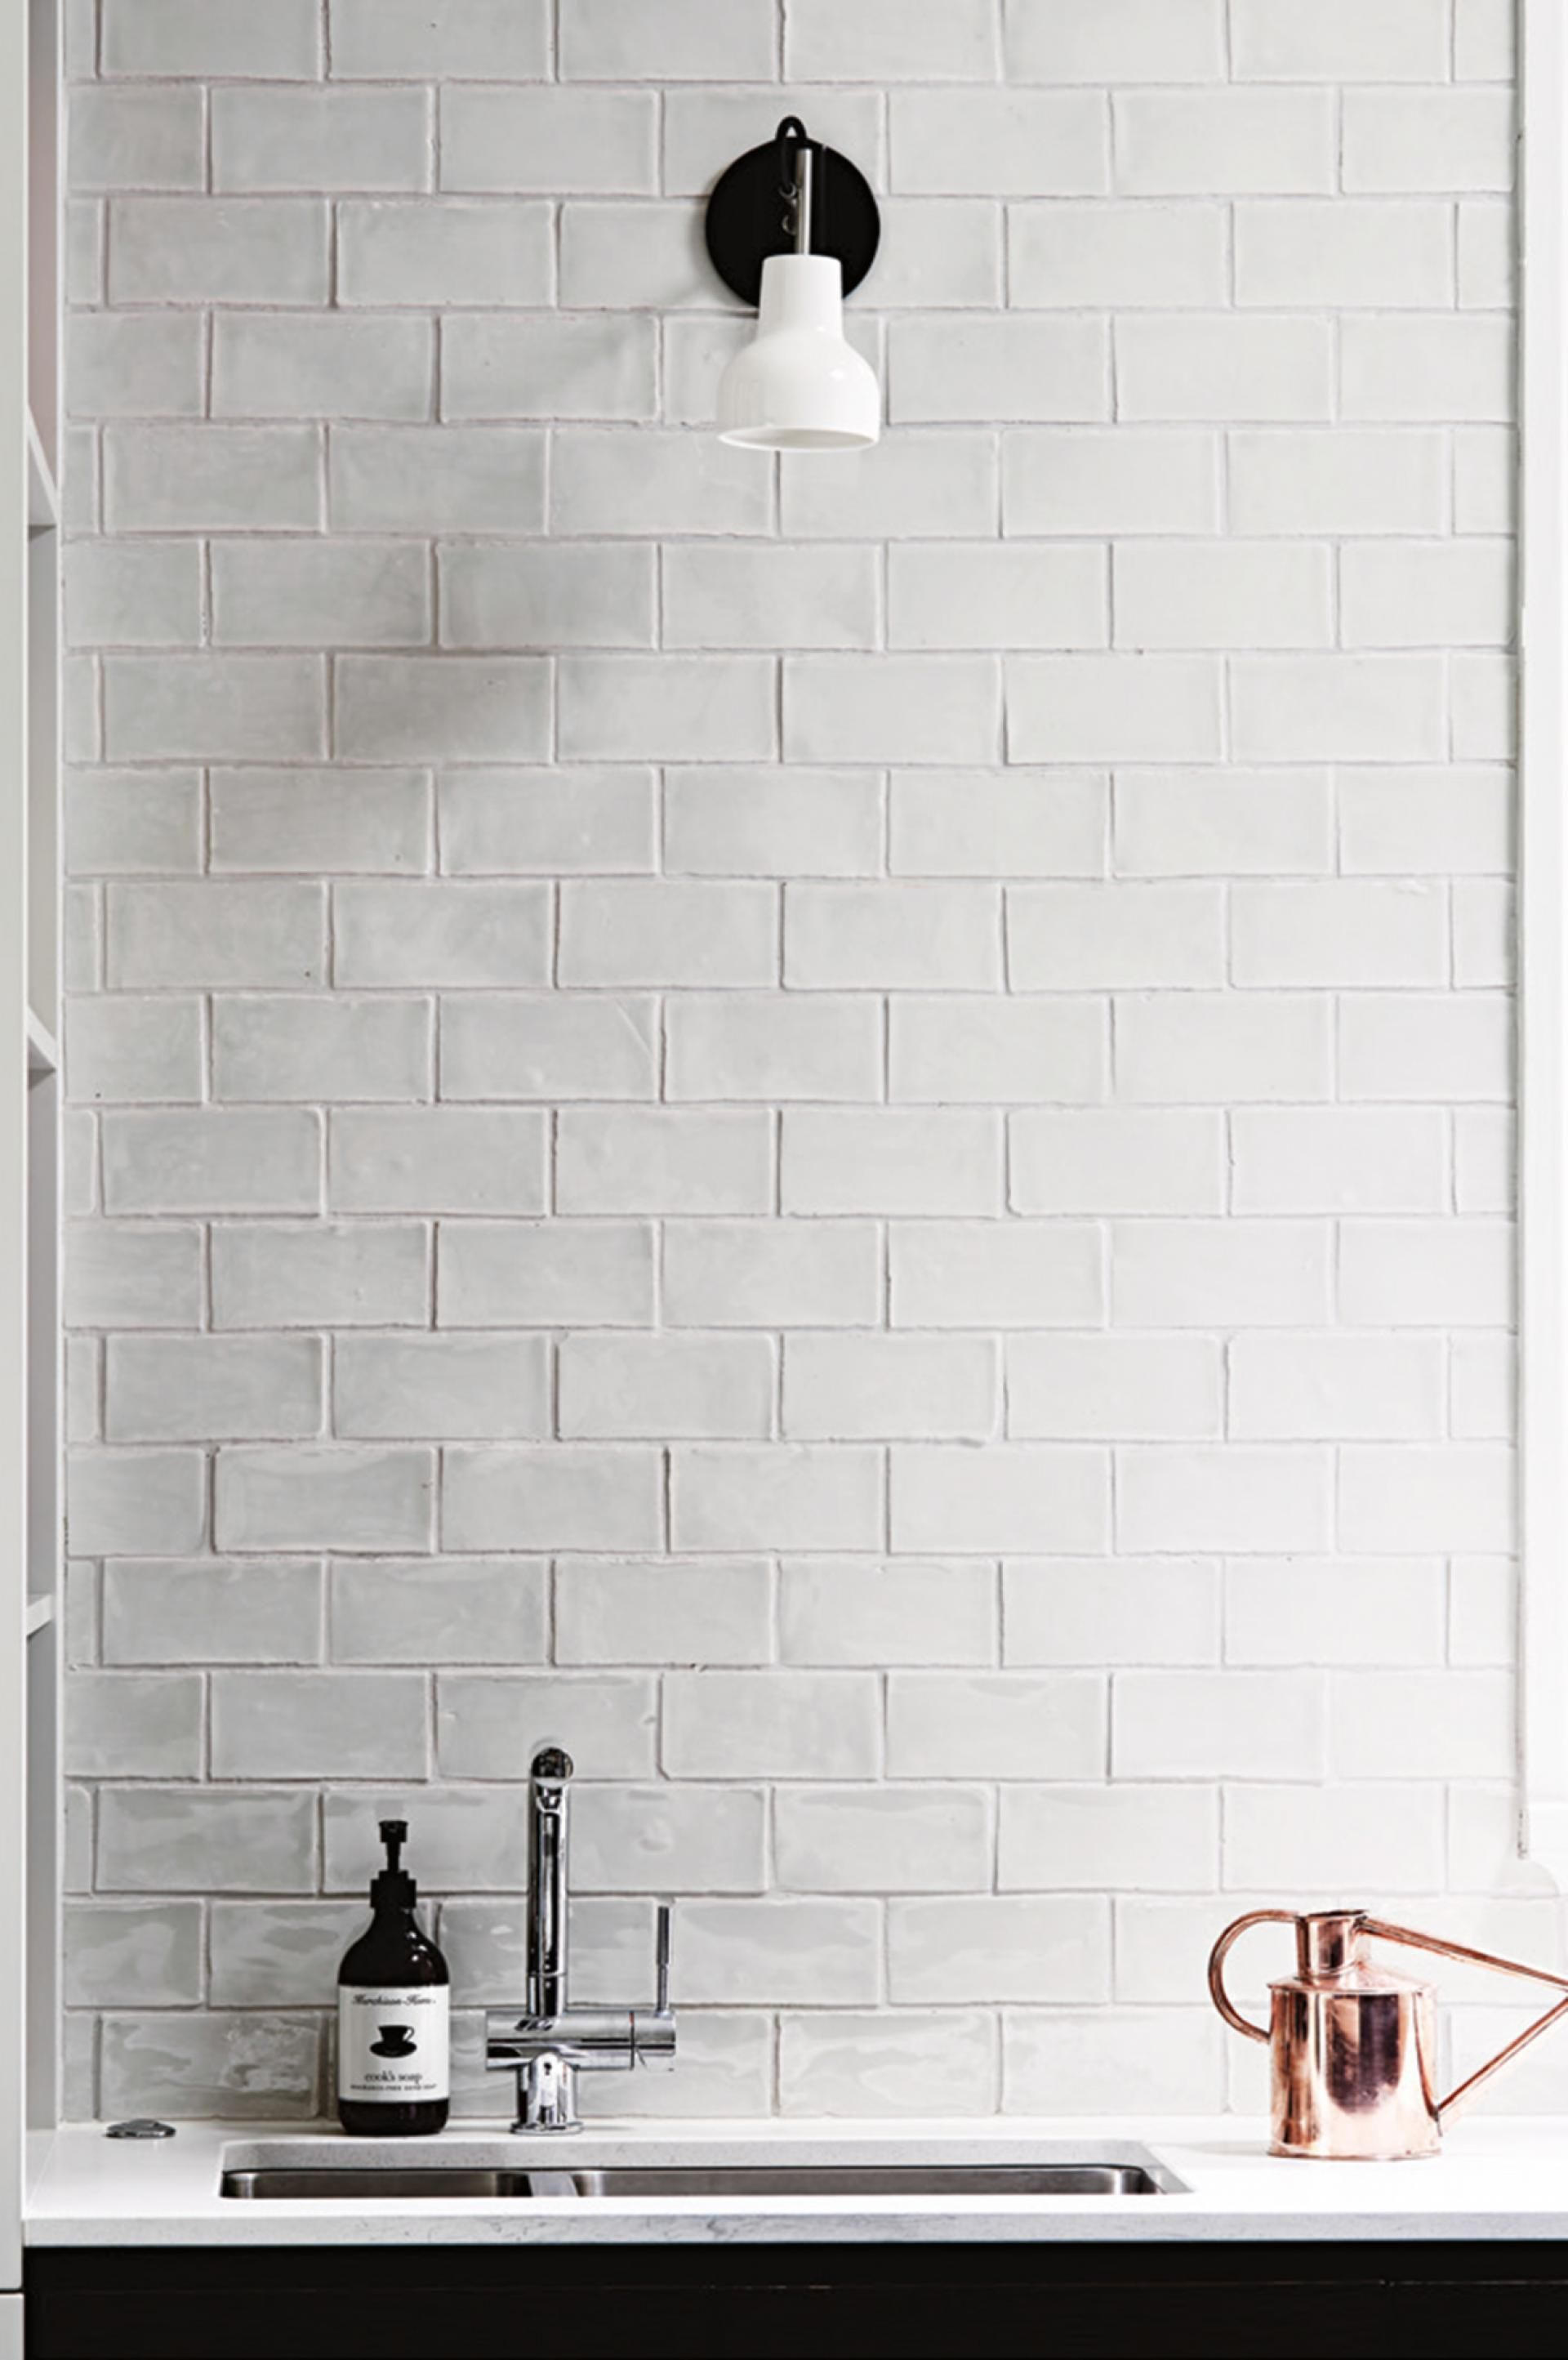 stylist and luxury kitchen wall tiles design. Tile for backsplash Renovation ideas from a classic home fit forever  Photography by Eve Wilson White Brick Wall Texture Interior Background Design Ideas and